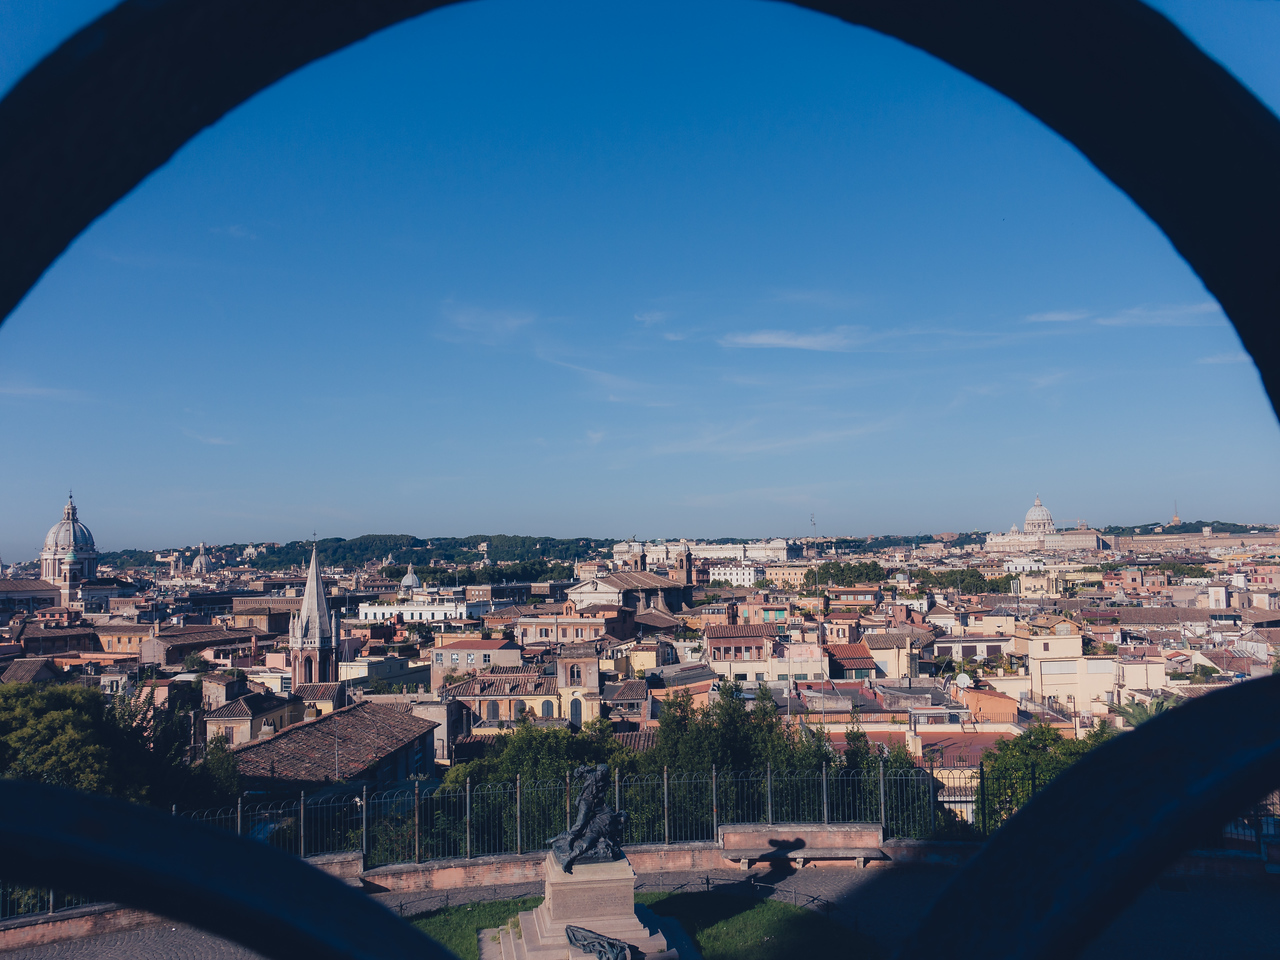 Rome as seen from Gianicolo hill